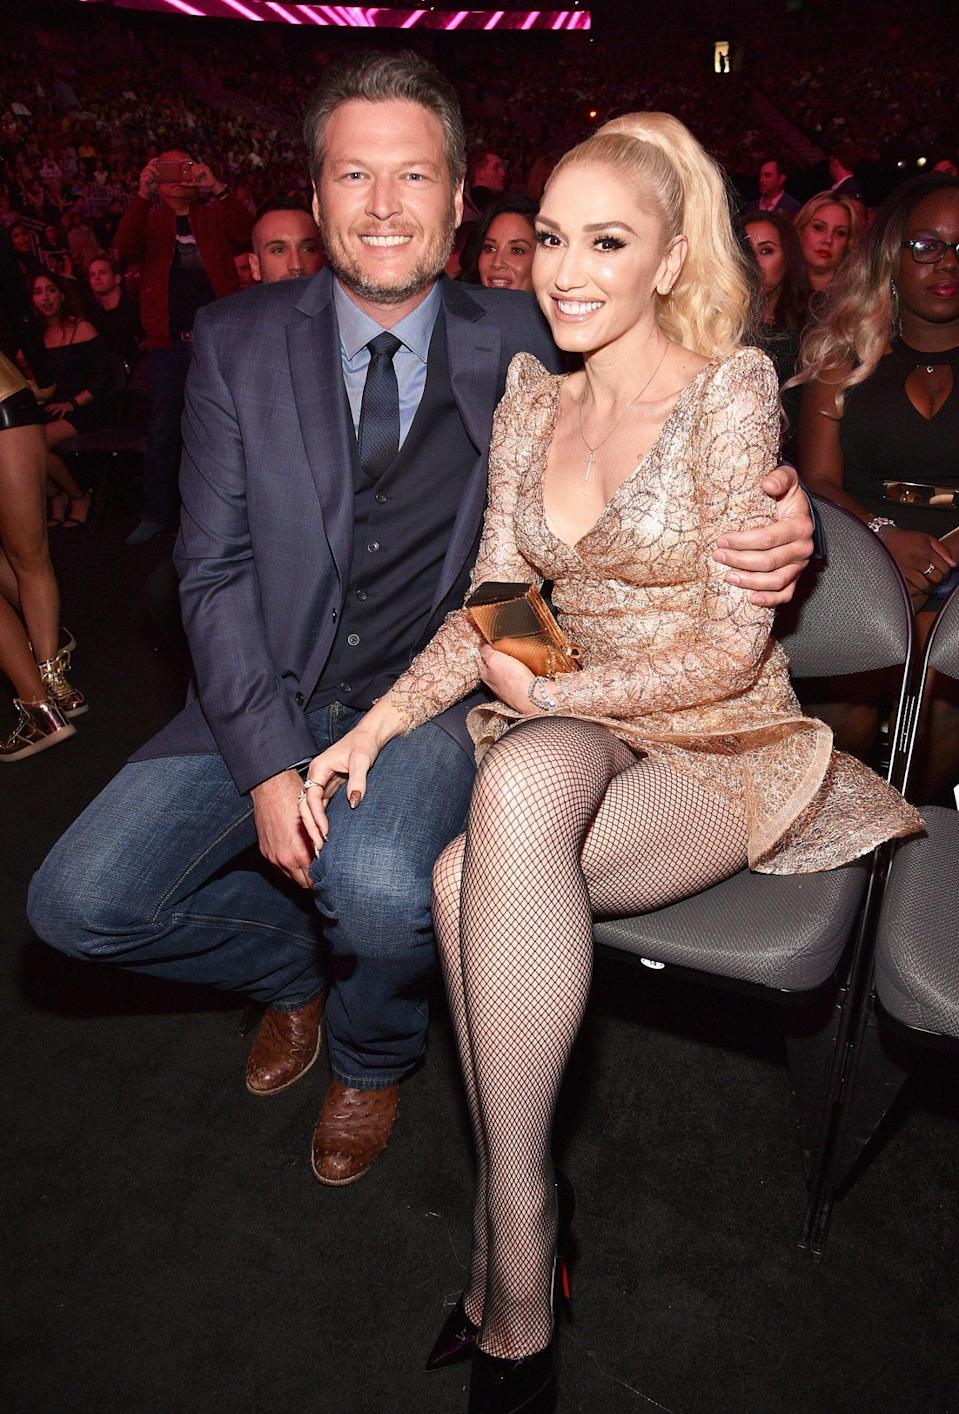 """<p>After Shelton was named <a href=""""https://people.com/country/sexiest-man-alive-blake-shelton-2017-cover-reveal/"""" rel=""""nofollow noopener"""" target=""""_blank"""" data-ylk=""""slk:PEOPLE's Sexiest Man Alive"""" class=""""link rapid-noclick-resp"""">PEOPLE's Sexiest Man Alive</a>, the country singer told PEOPLE that he credited his <a href=""""https://people.com/style/blake-shelton-on-gwen-stefanis-shoes-with-his-face-camo-and-more/"""" rel=""""nofollow noopener"""" target=""""_blank"""" data-ylk=""""slk:girlfriend of two years"""" class=""""link rapid-noclick-resp"""">girlfriend of two years</a>, <a href=""""https://people.com/tag/gwen-stefani/"""" rel=""""nofollow noopener"""" target=""""_blank"""" data-ylk=""""slk:Gwen Stefani"""" class=""""link rapid-noclick-resp"""">Gwen Stefani</a>, for convincing him to embrace the crown. """"She goes, 'Listen to me, you're going to regret this for the rest of your life if you don't take this gift and just live in the moment,"""" Shelton said. </p>"""